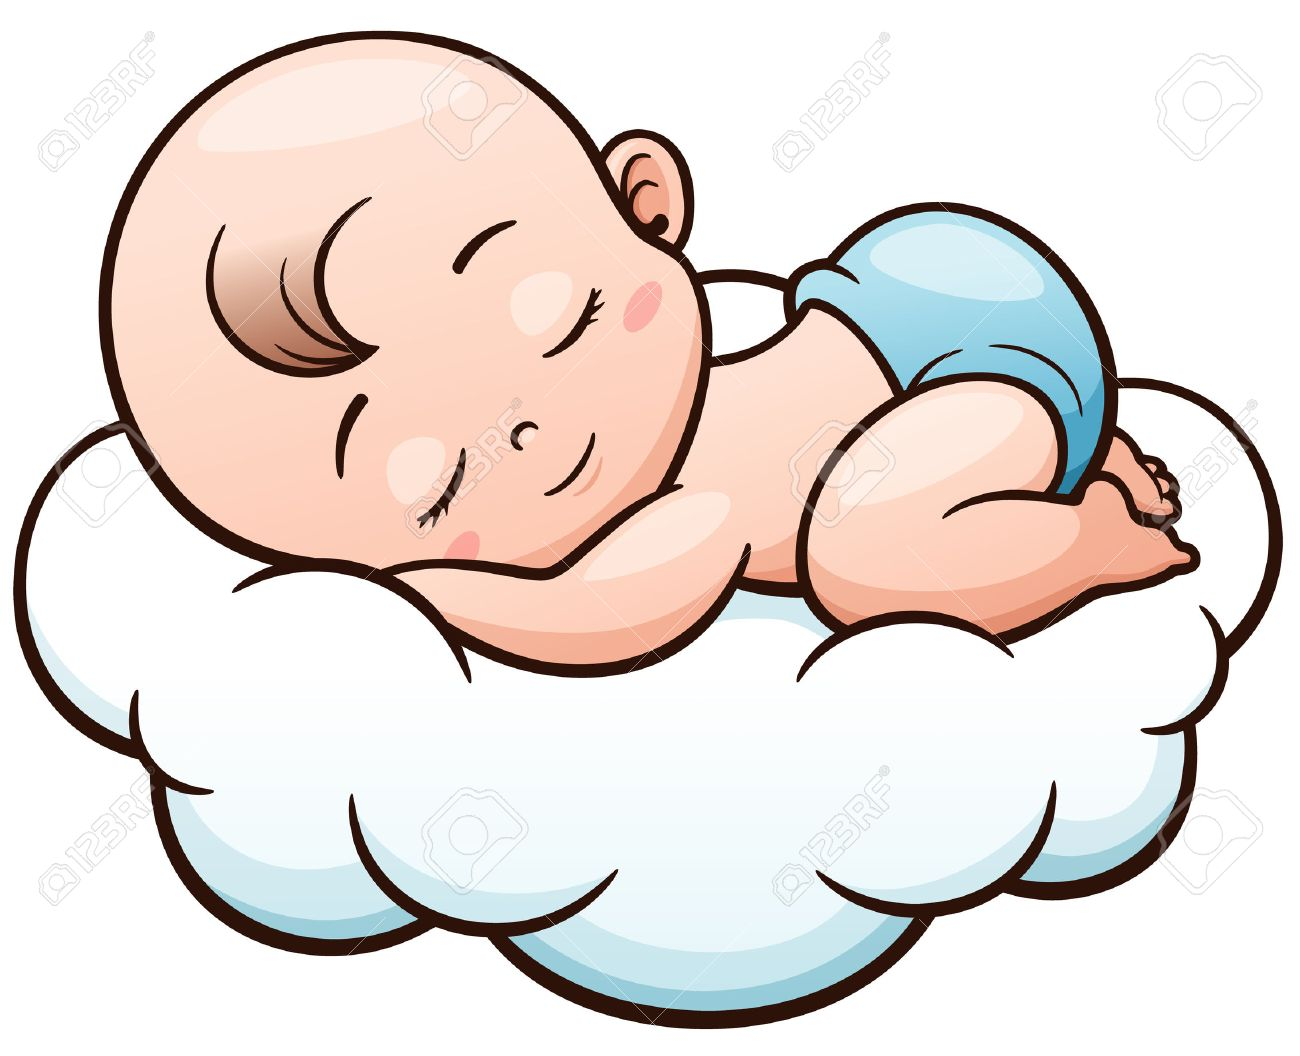 Vector illustration of cartoon baby sleeping on a cloud royalty free vector illustration of cartoon baby sleeping on a cloud stock vector 66380184 voltagebd Image collections